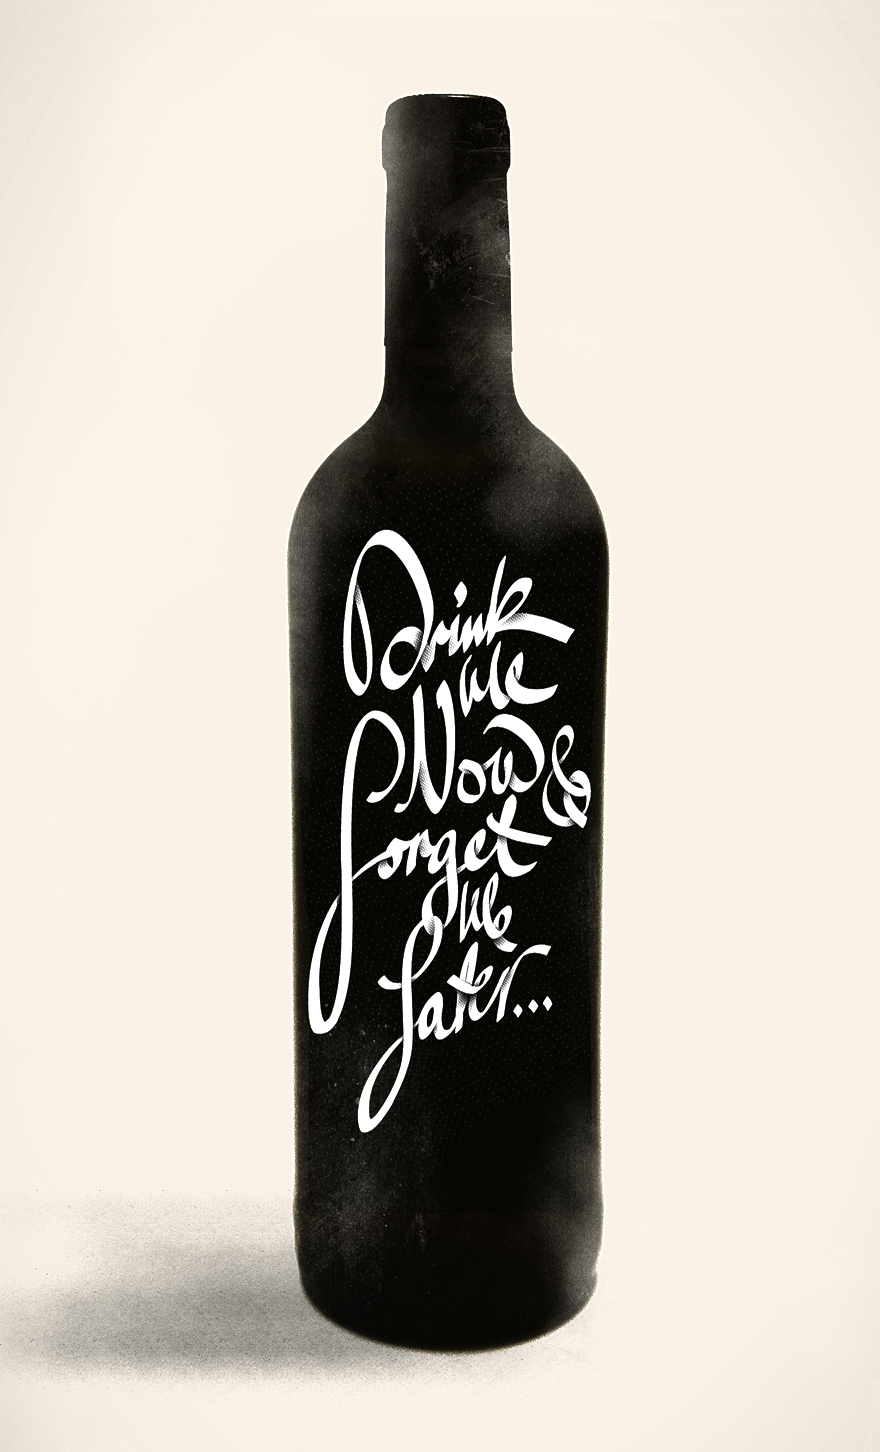 Drink Me Now & Forget Me Later... - Typography - Creattica